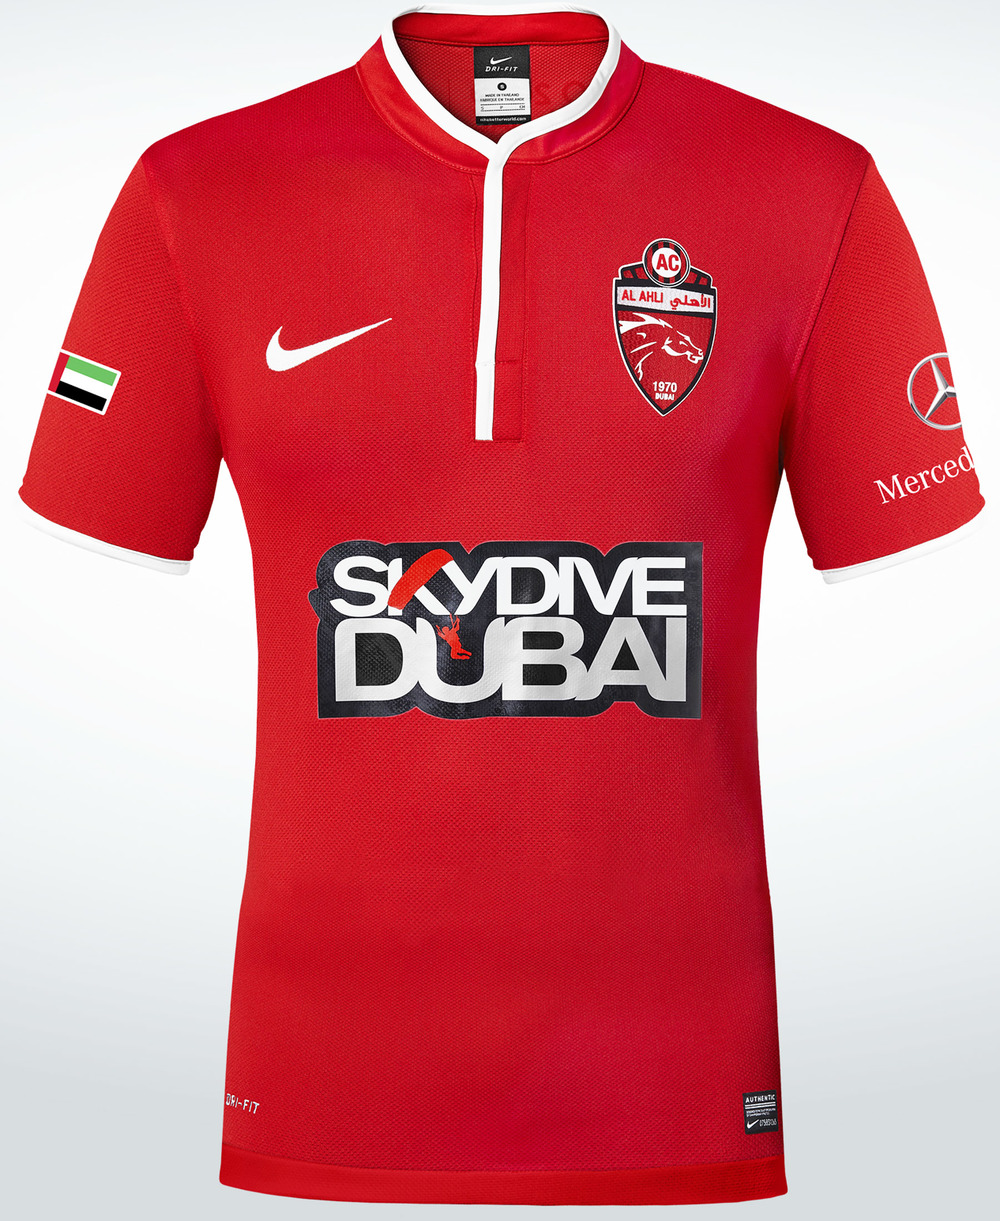 al_ahli_full_red_original.jpg